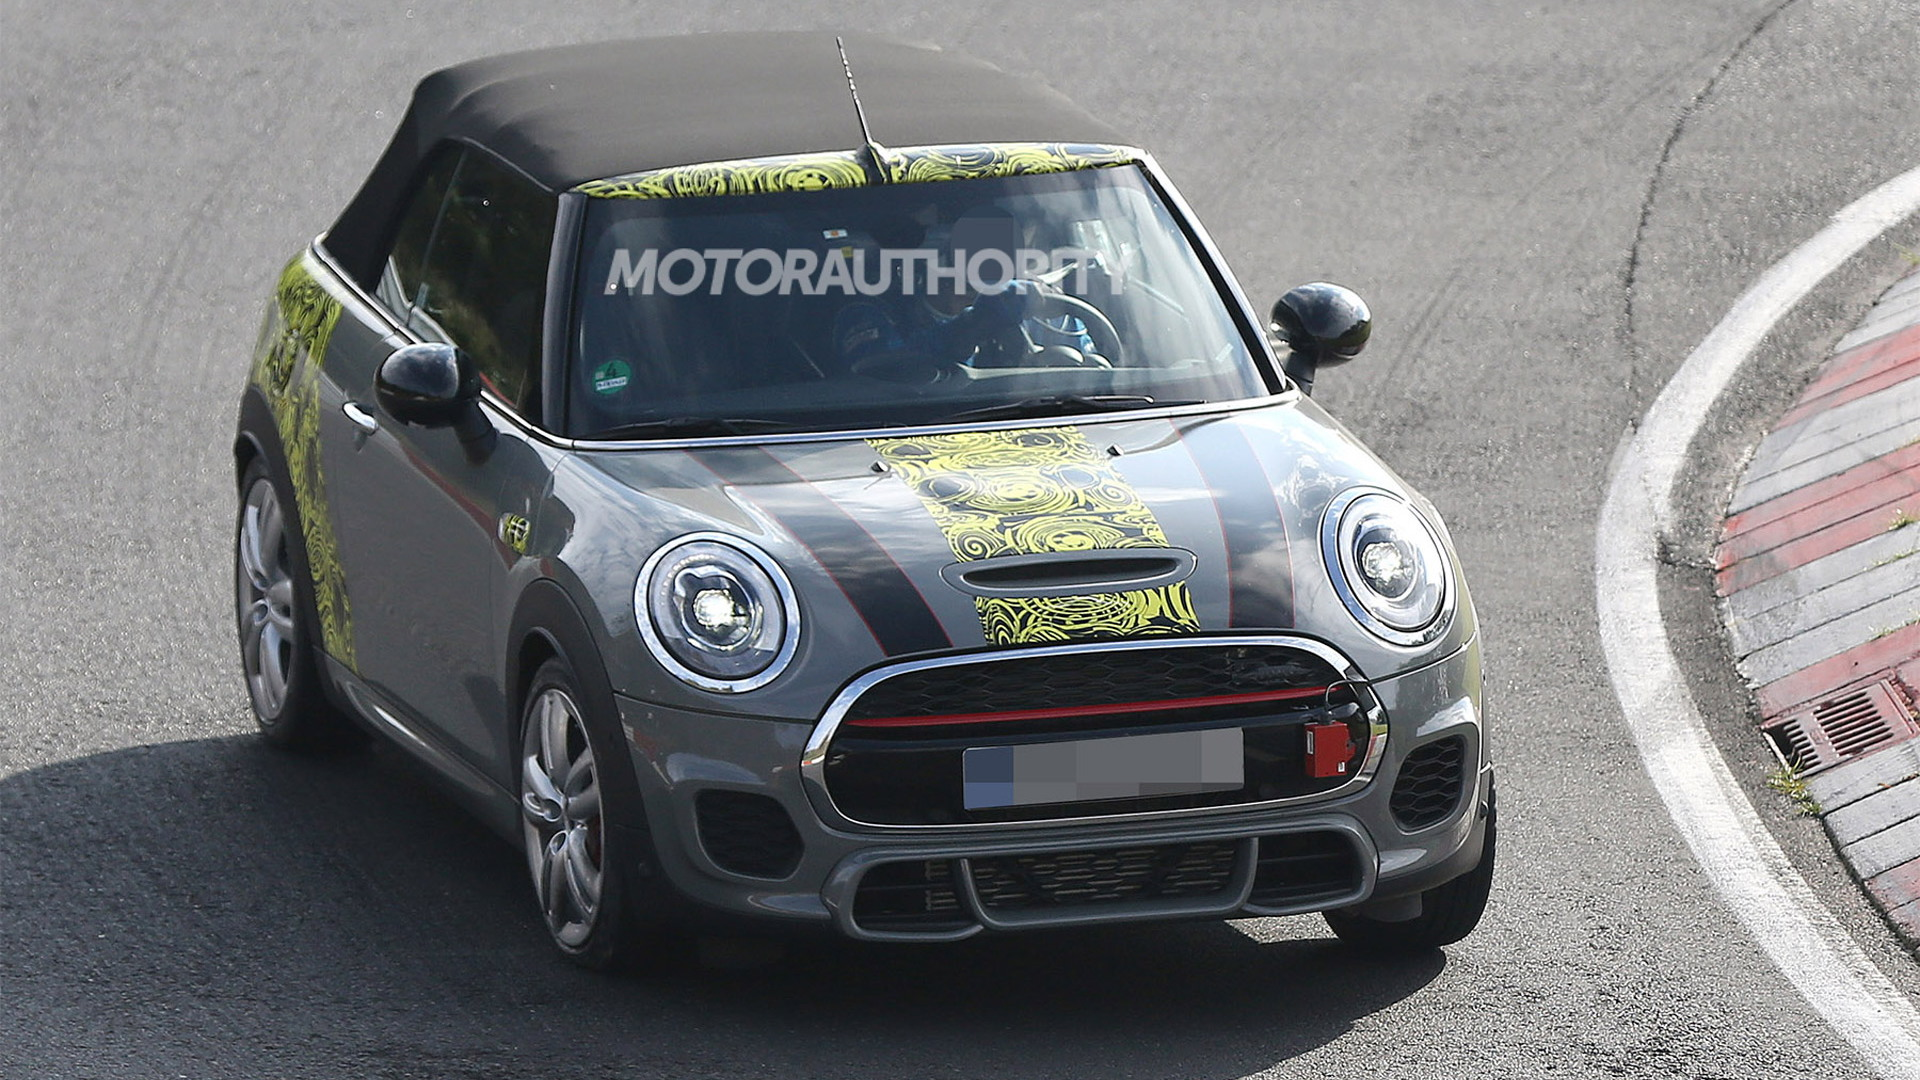 2016 MINI John Cooper Works Convertible spy shots - Image via S. Baldauf/SB-Medien